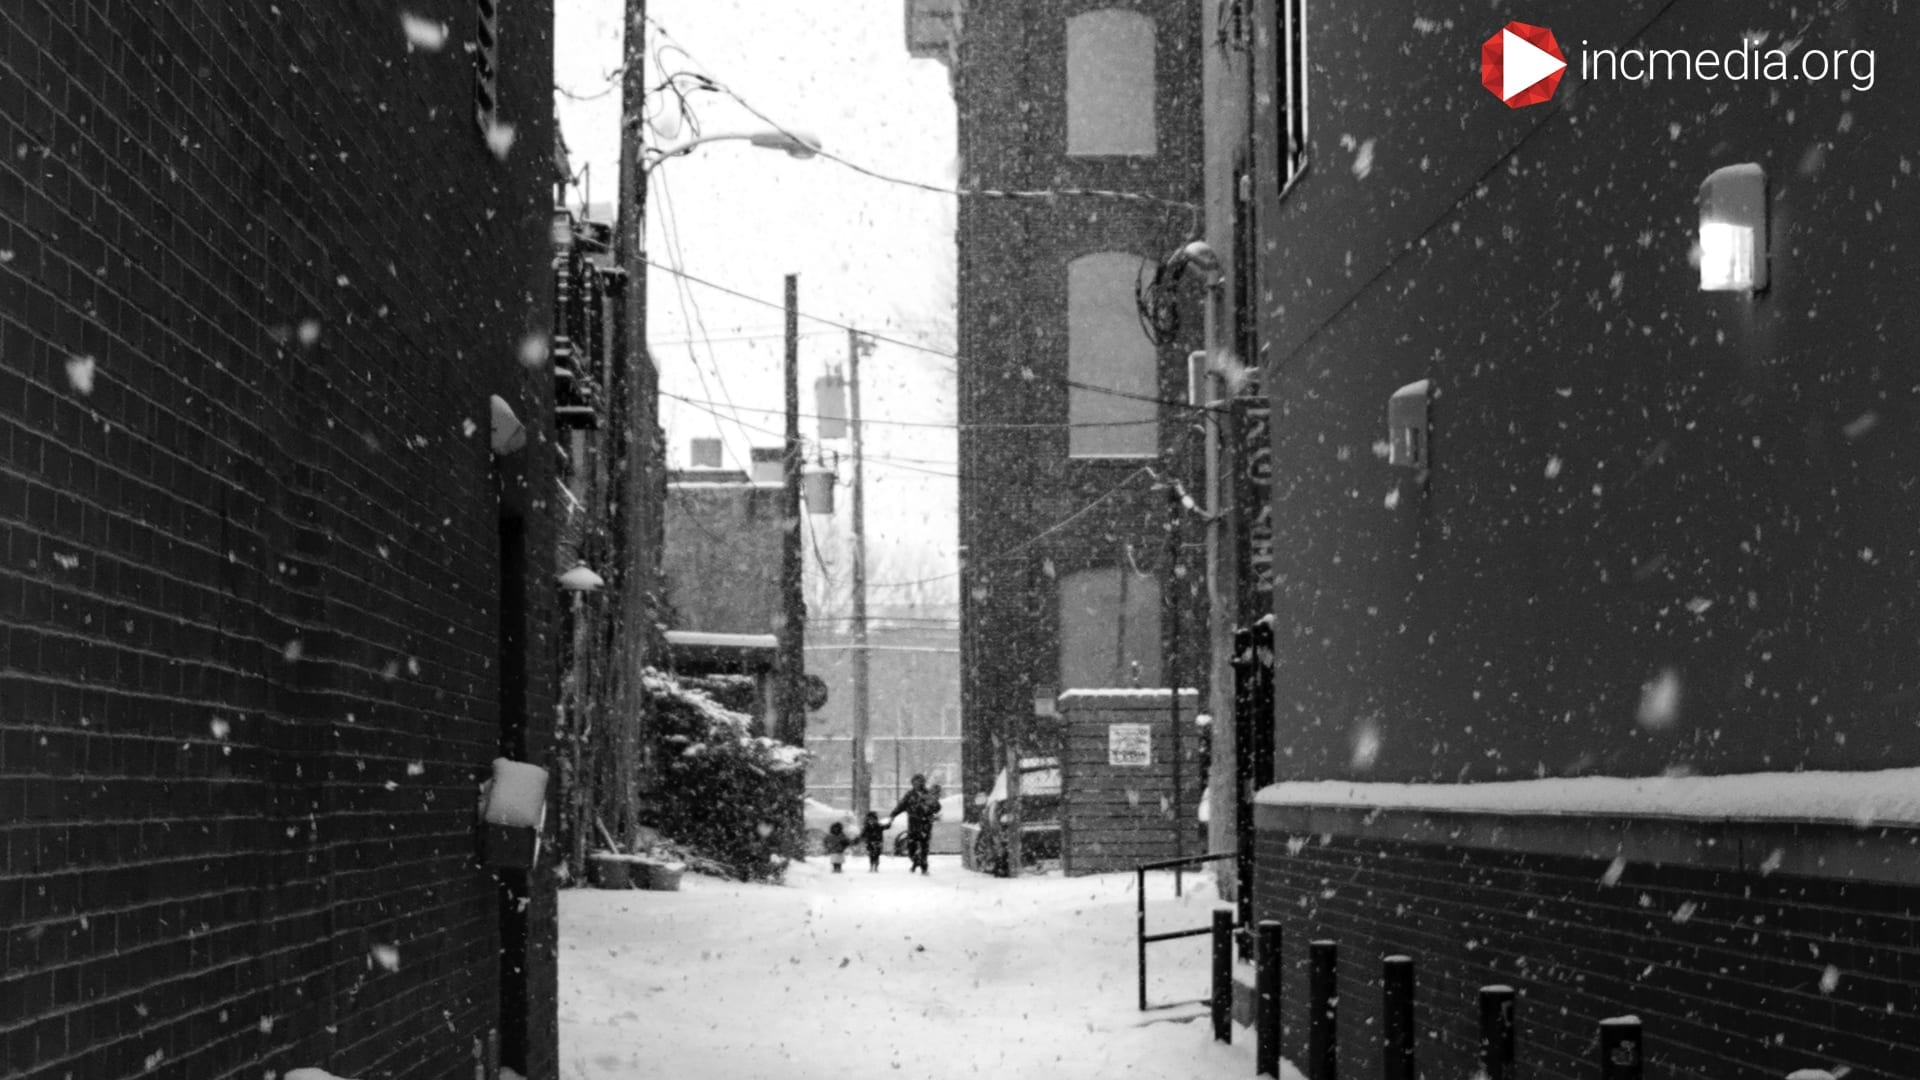 Alleyway with snow falling, a mom carrying three kids in the distance.